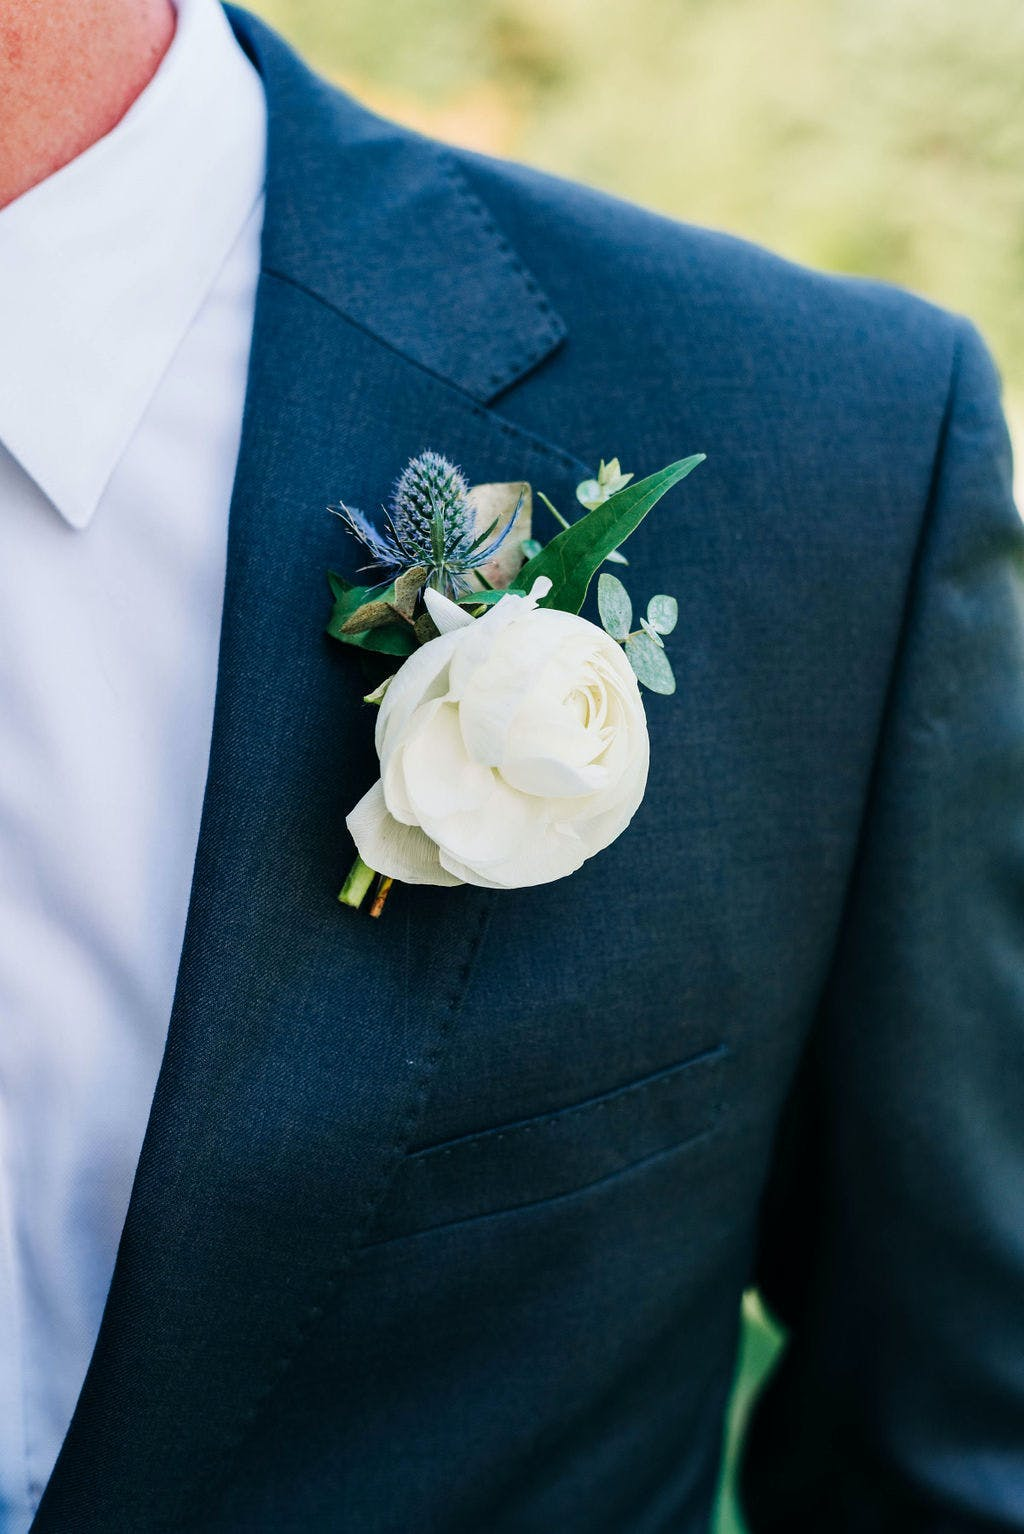 How to place and pin your wedding boutonniere for men.